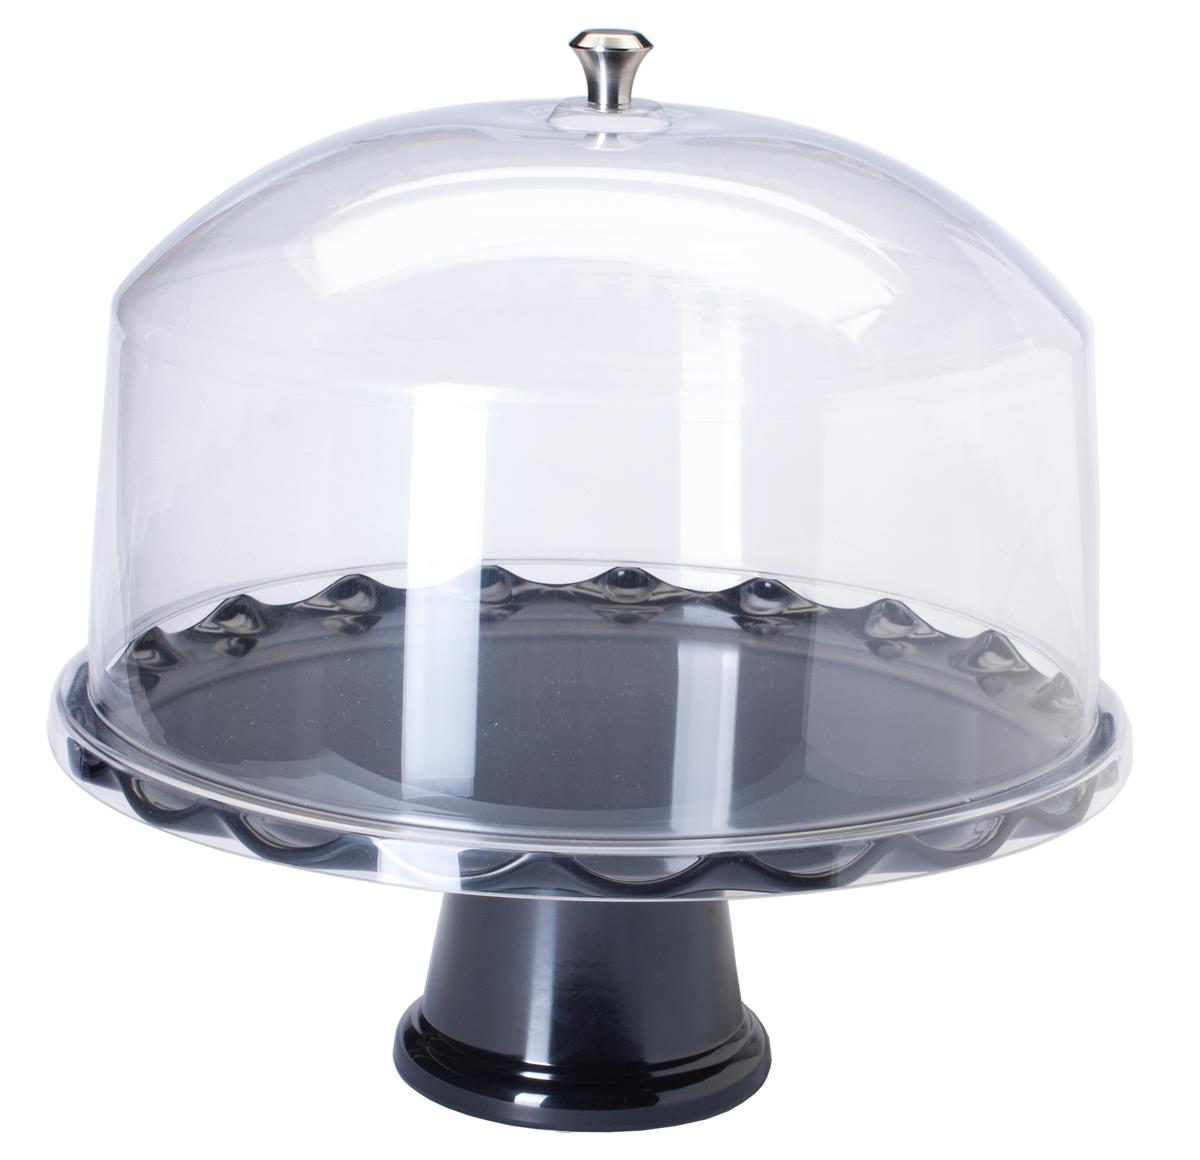 sc 1 st  Displays2go & 15u201d Black Cake Stand with Dome | Detachable Riser